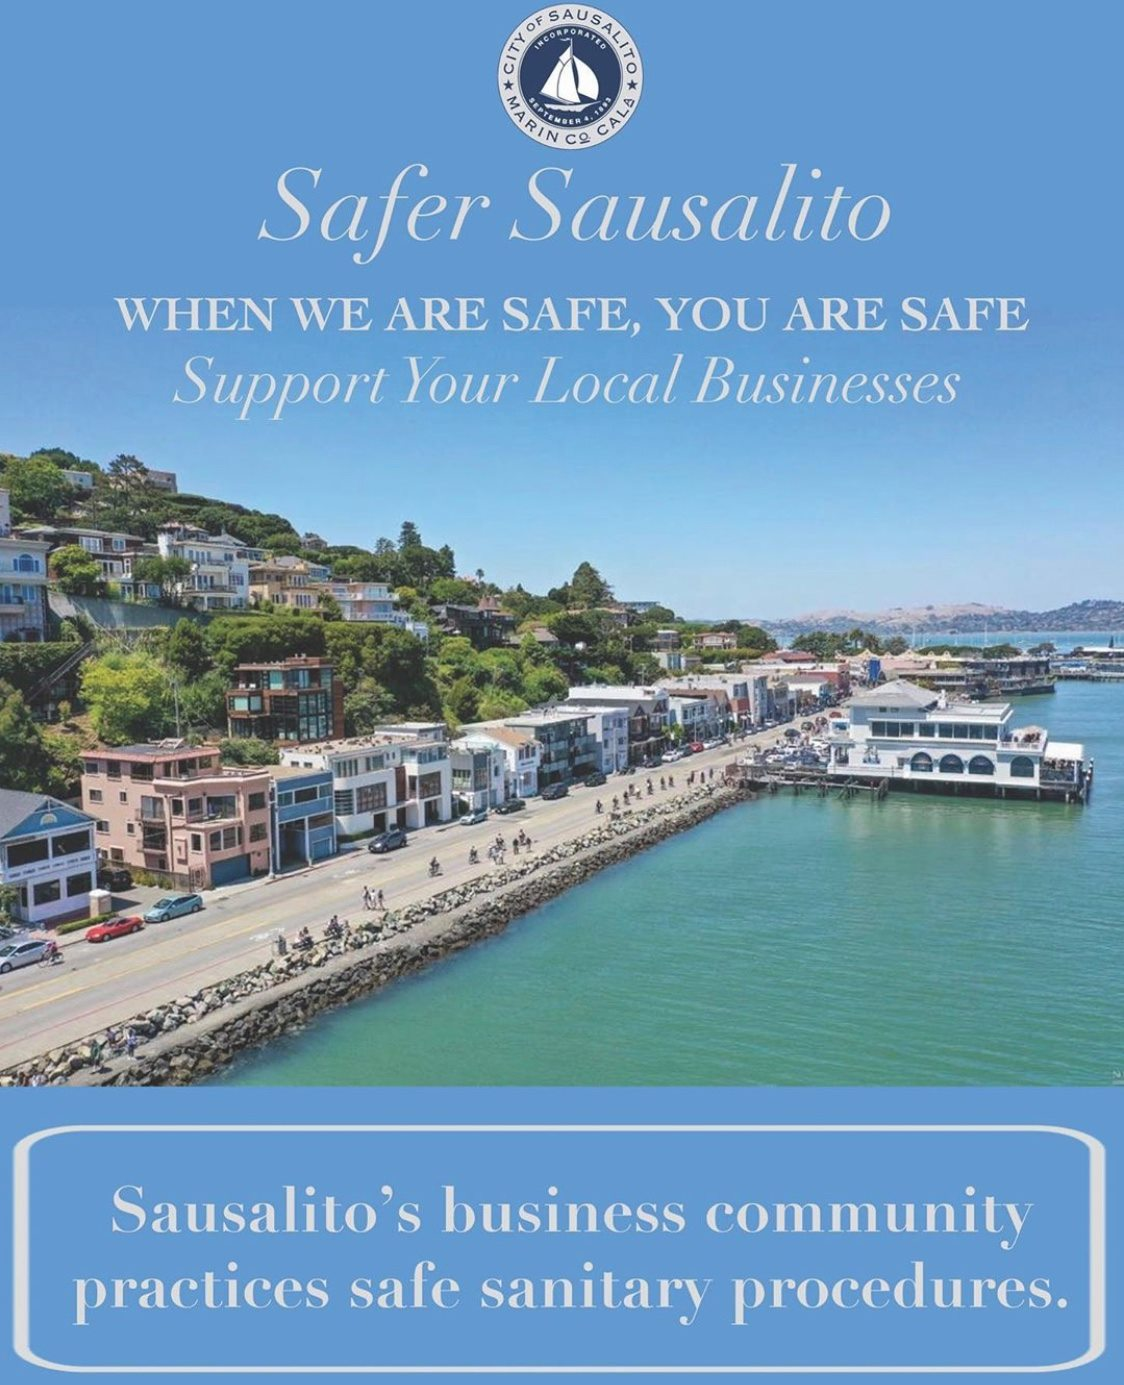 Safer Sausalito